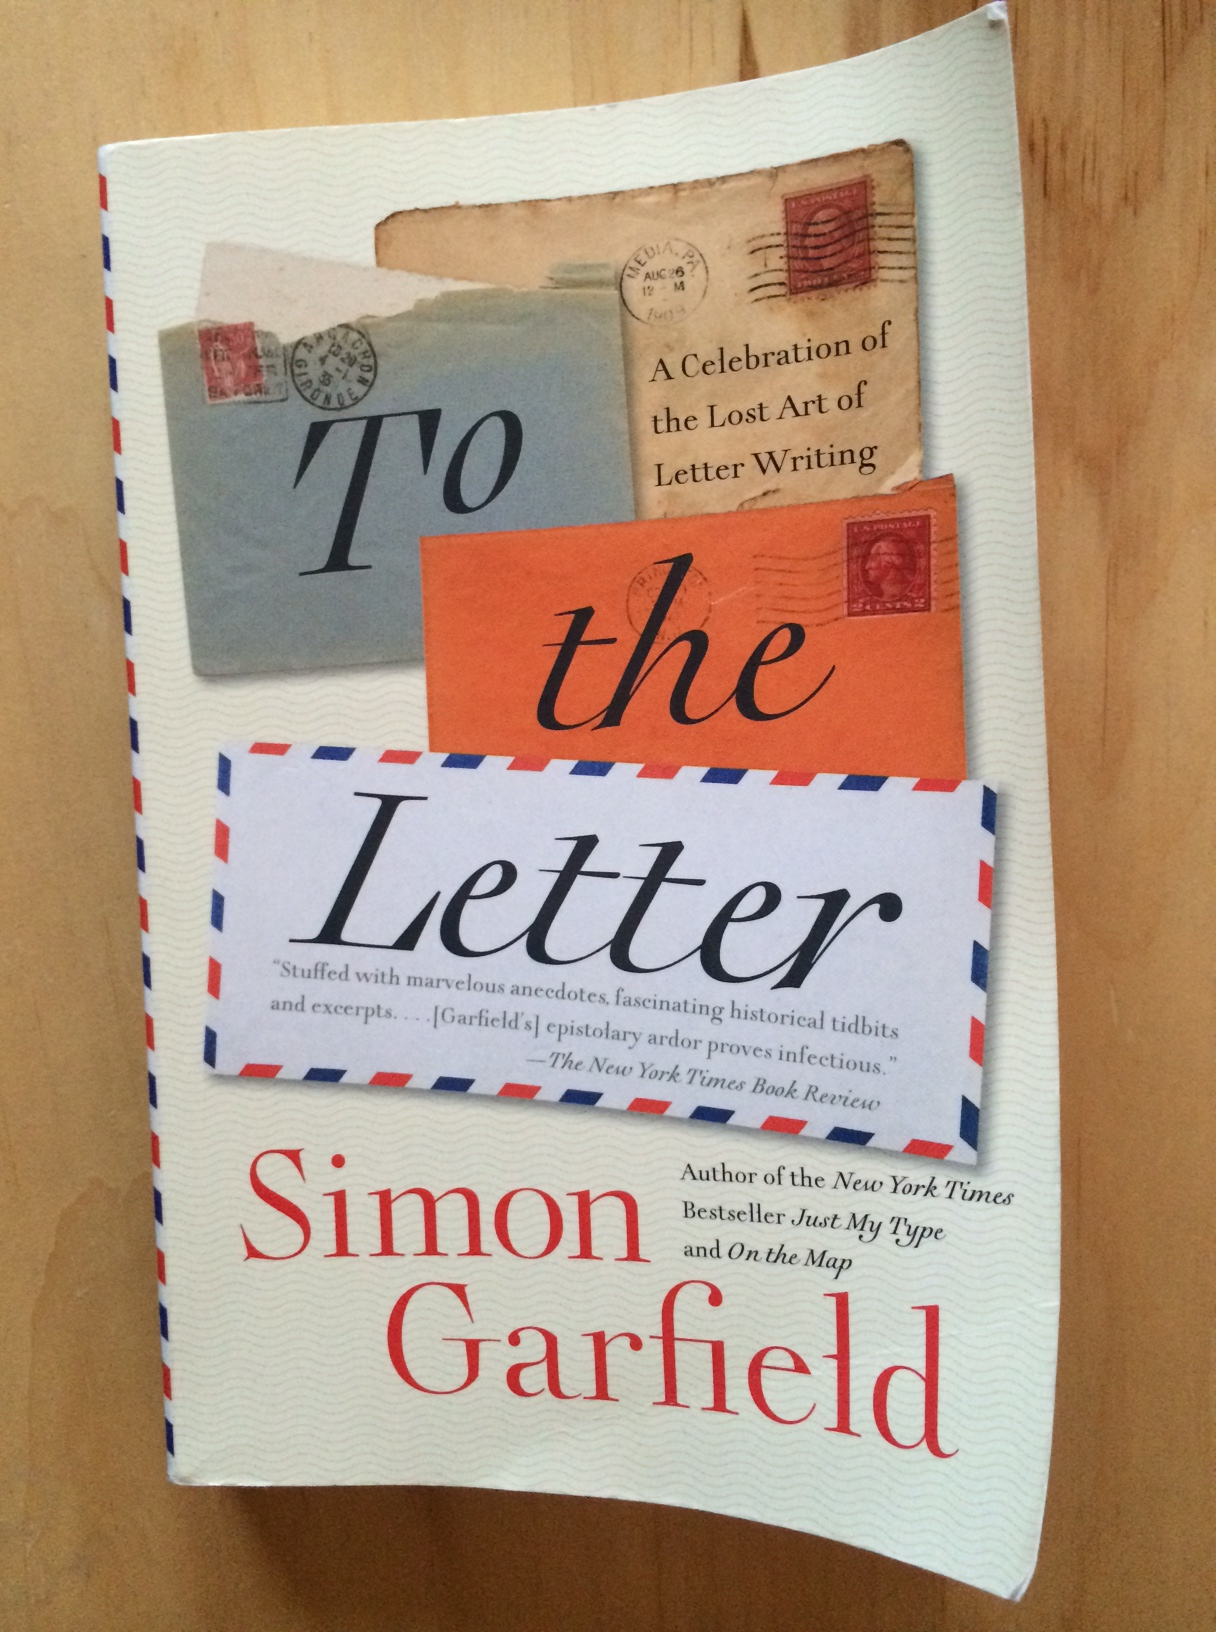 simon garfields to the letter a celebration of the lost art of letter writing is one of the most charming books ive read in years